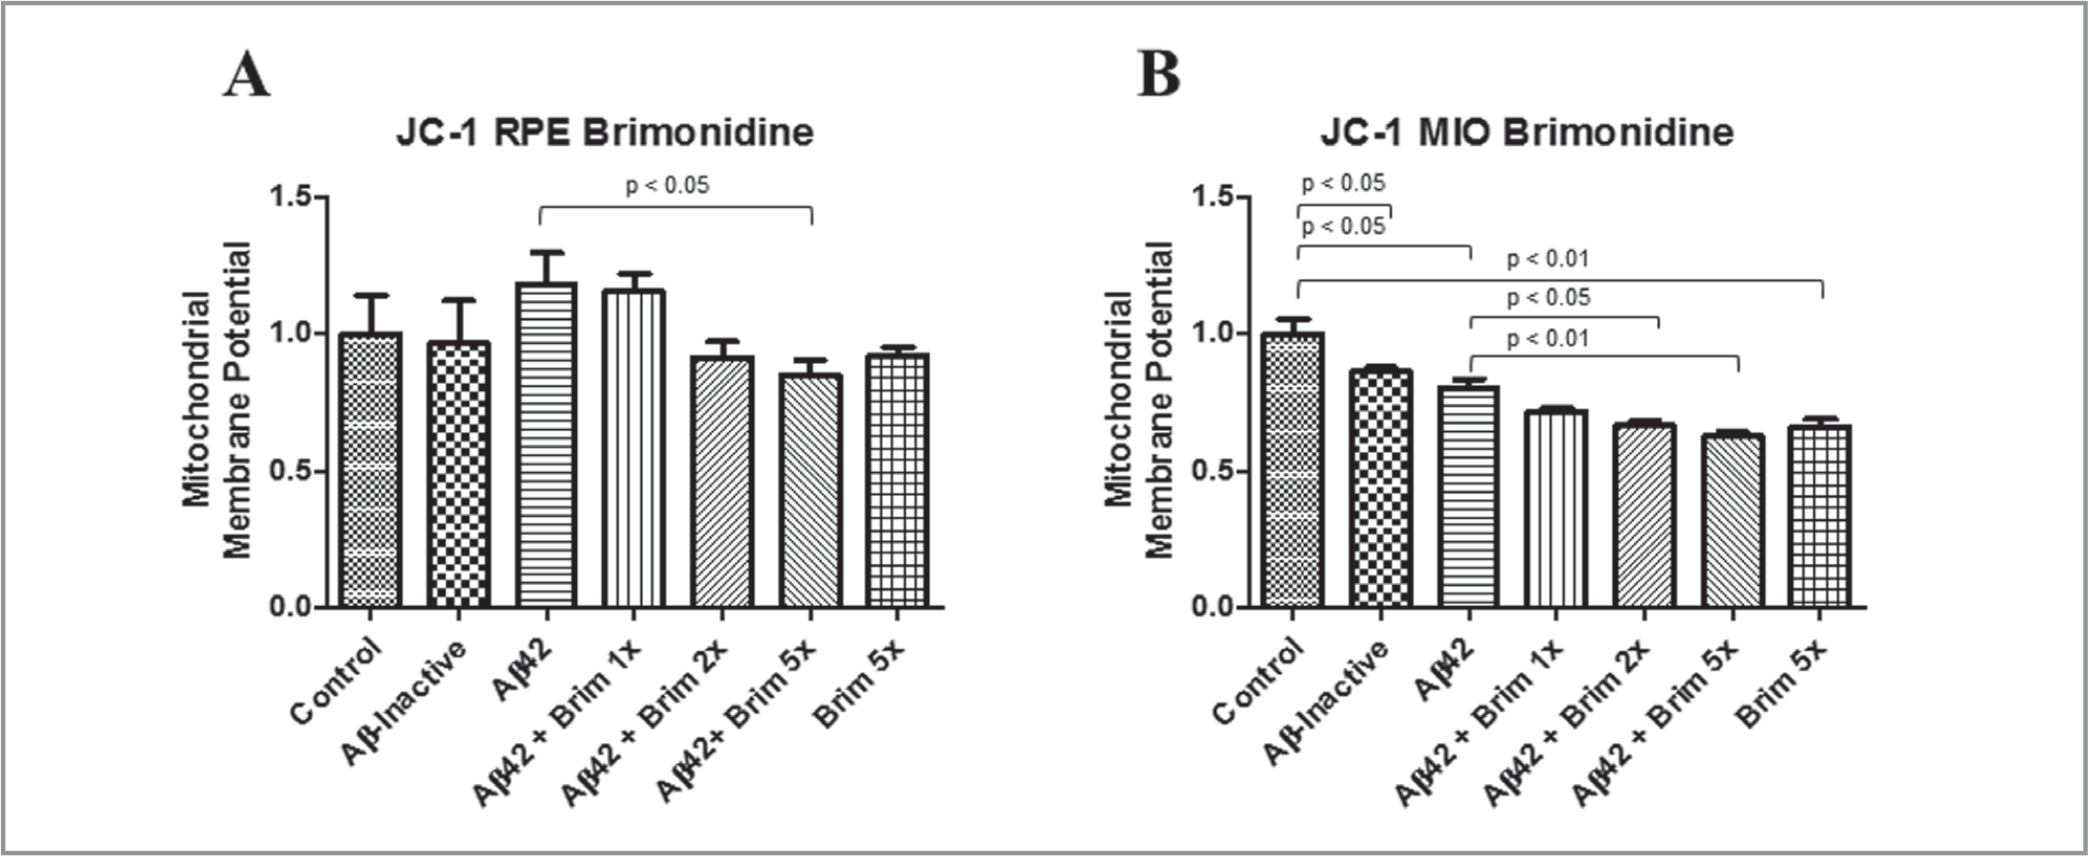 Mitochondrial membrane potential assay (JC-1 Assay). (A) Adult human retinal pigment epithelial (RPE) cells after pretreatment with 1×, 2×, and 5× concentrations of brimonidine and exposure to amyloid-beta 1–42 (Aβ42) 10μM. (B) Müller (MIO) cells after pretreatment with 1×, 2×, and 5× concentrations of brimonidine and exposure to Aβ42 10μM. Data are normalized to set control (untreated) samples at 100% of signal for comparison.